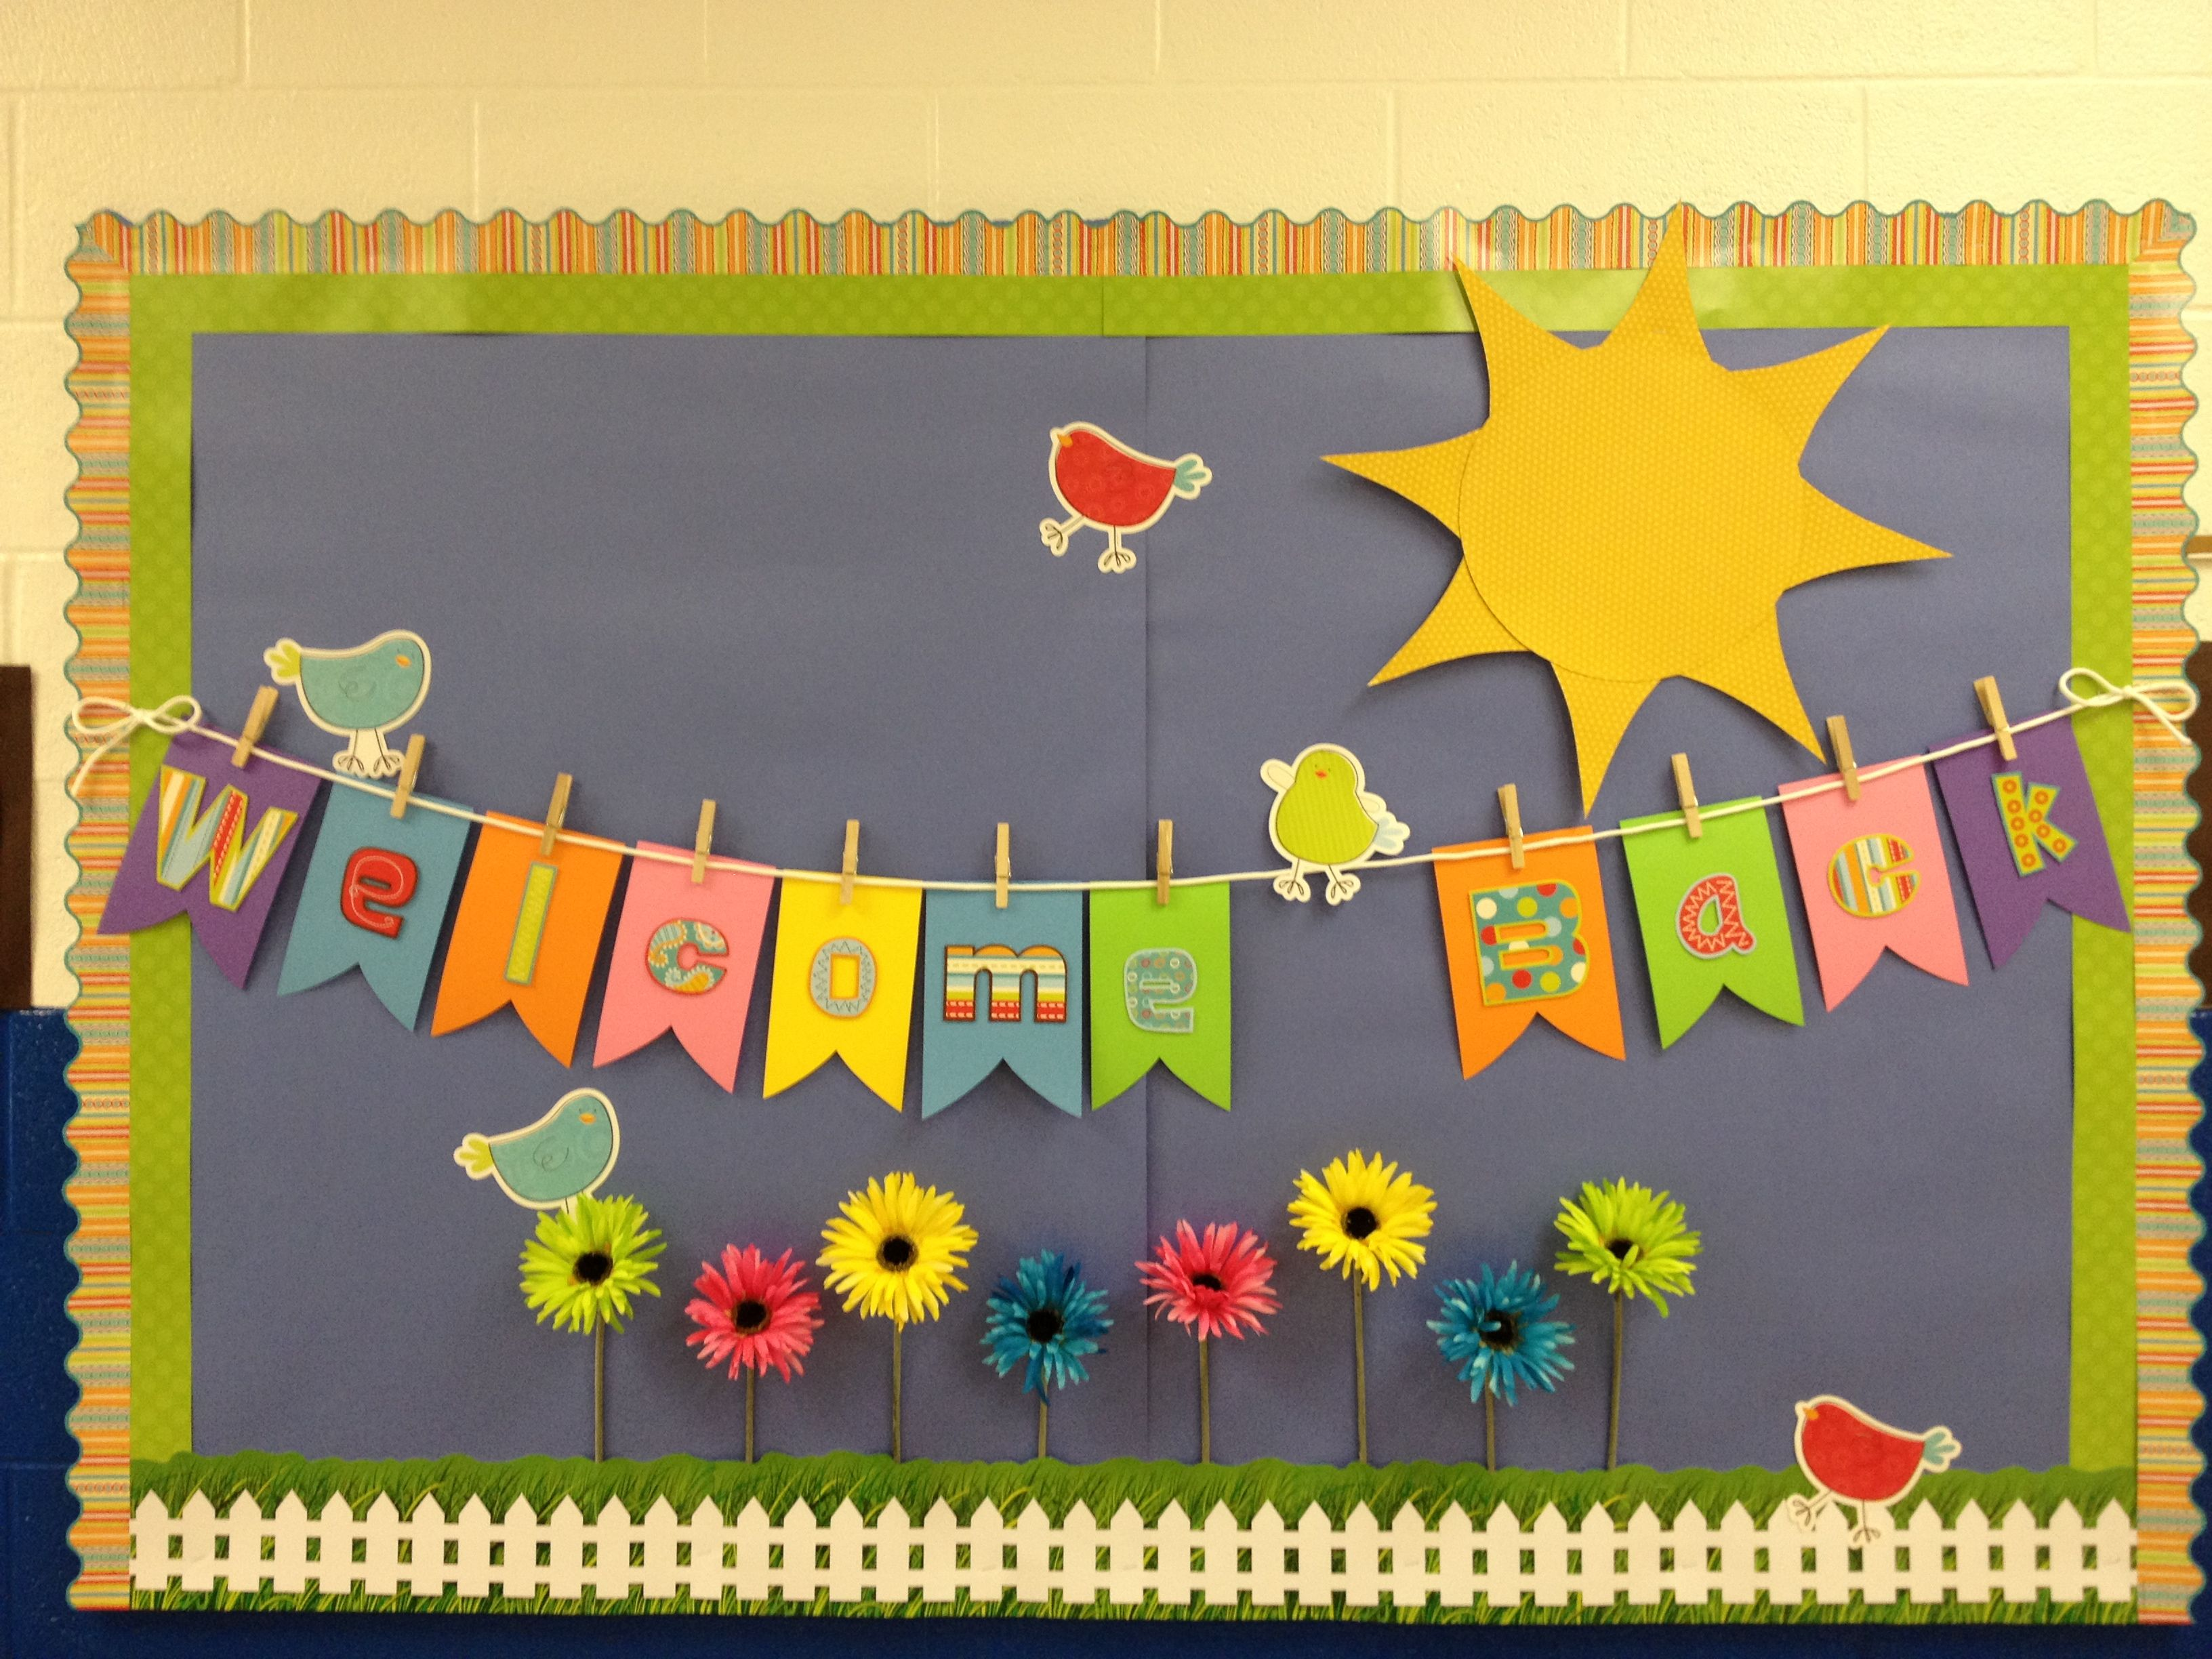 Classroom Design For Bulletin Board ~ Spring theme welcome back to school bulletin boards